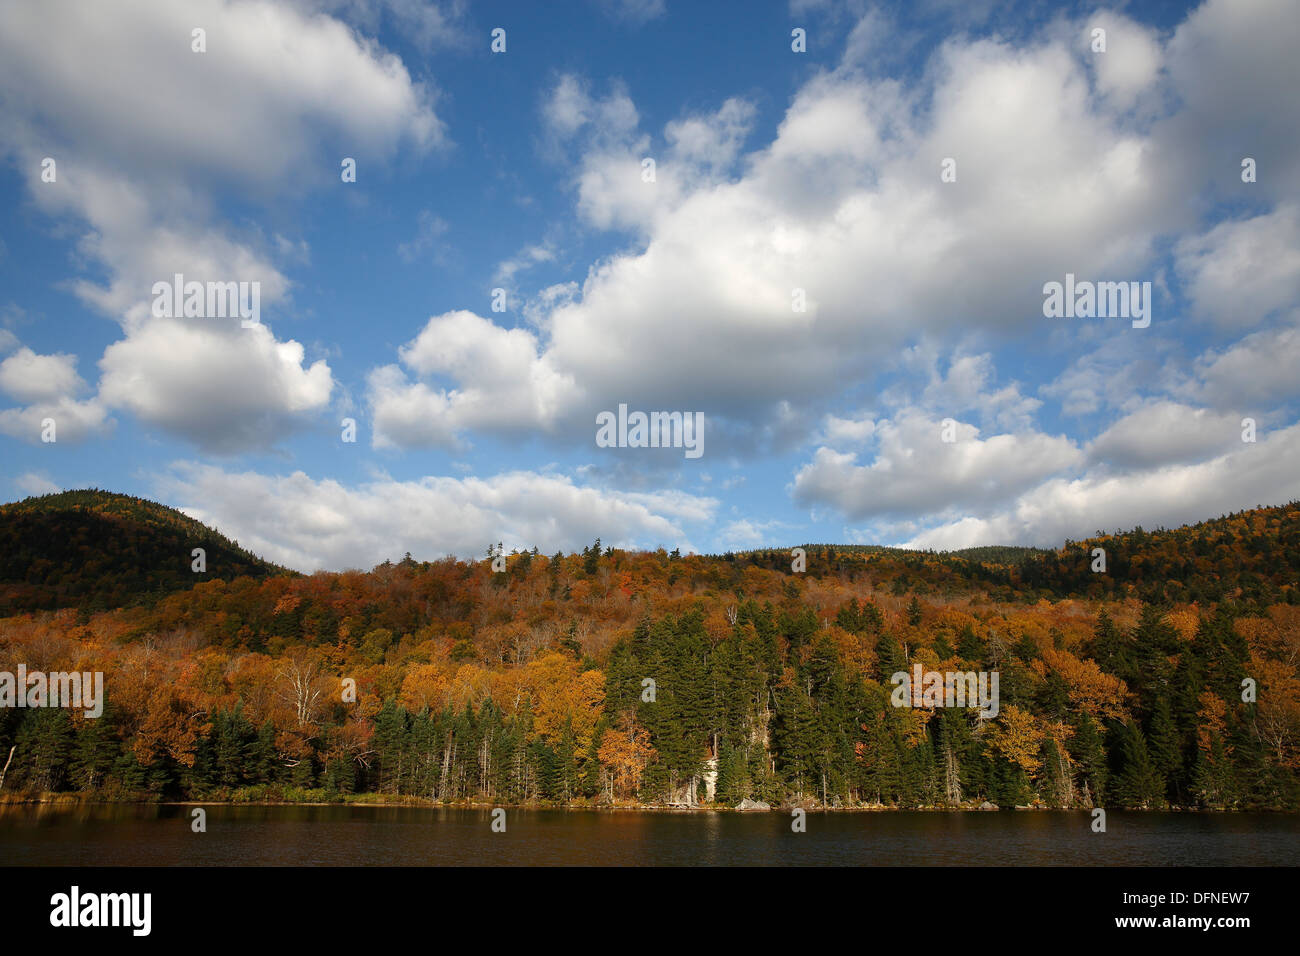 Fall foliage is reflected on the surface of Saco Lake in Crawford Notch, New Hampshire, USA Stock Photo